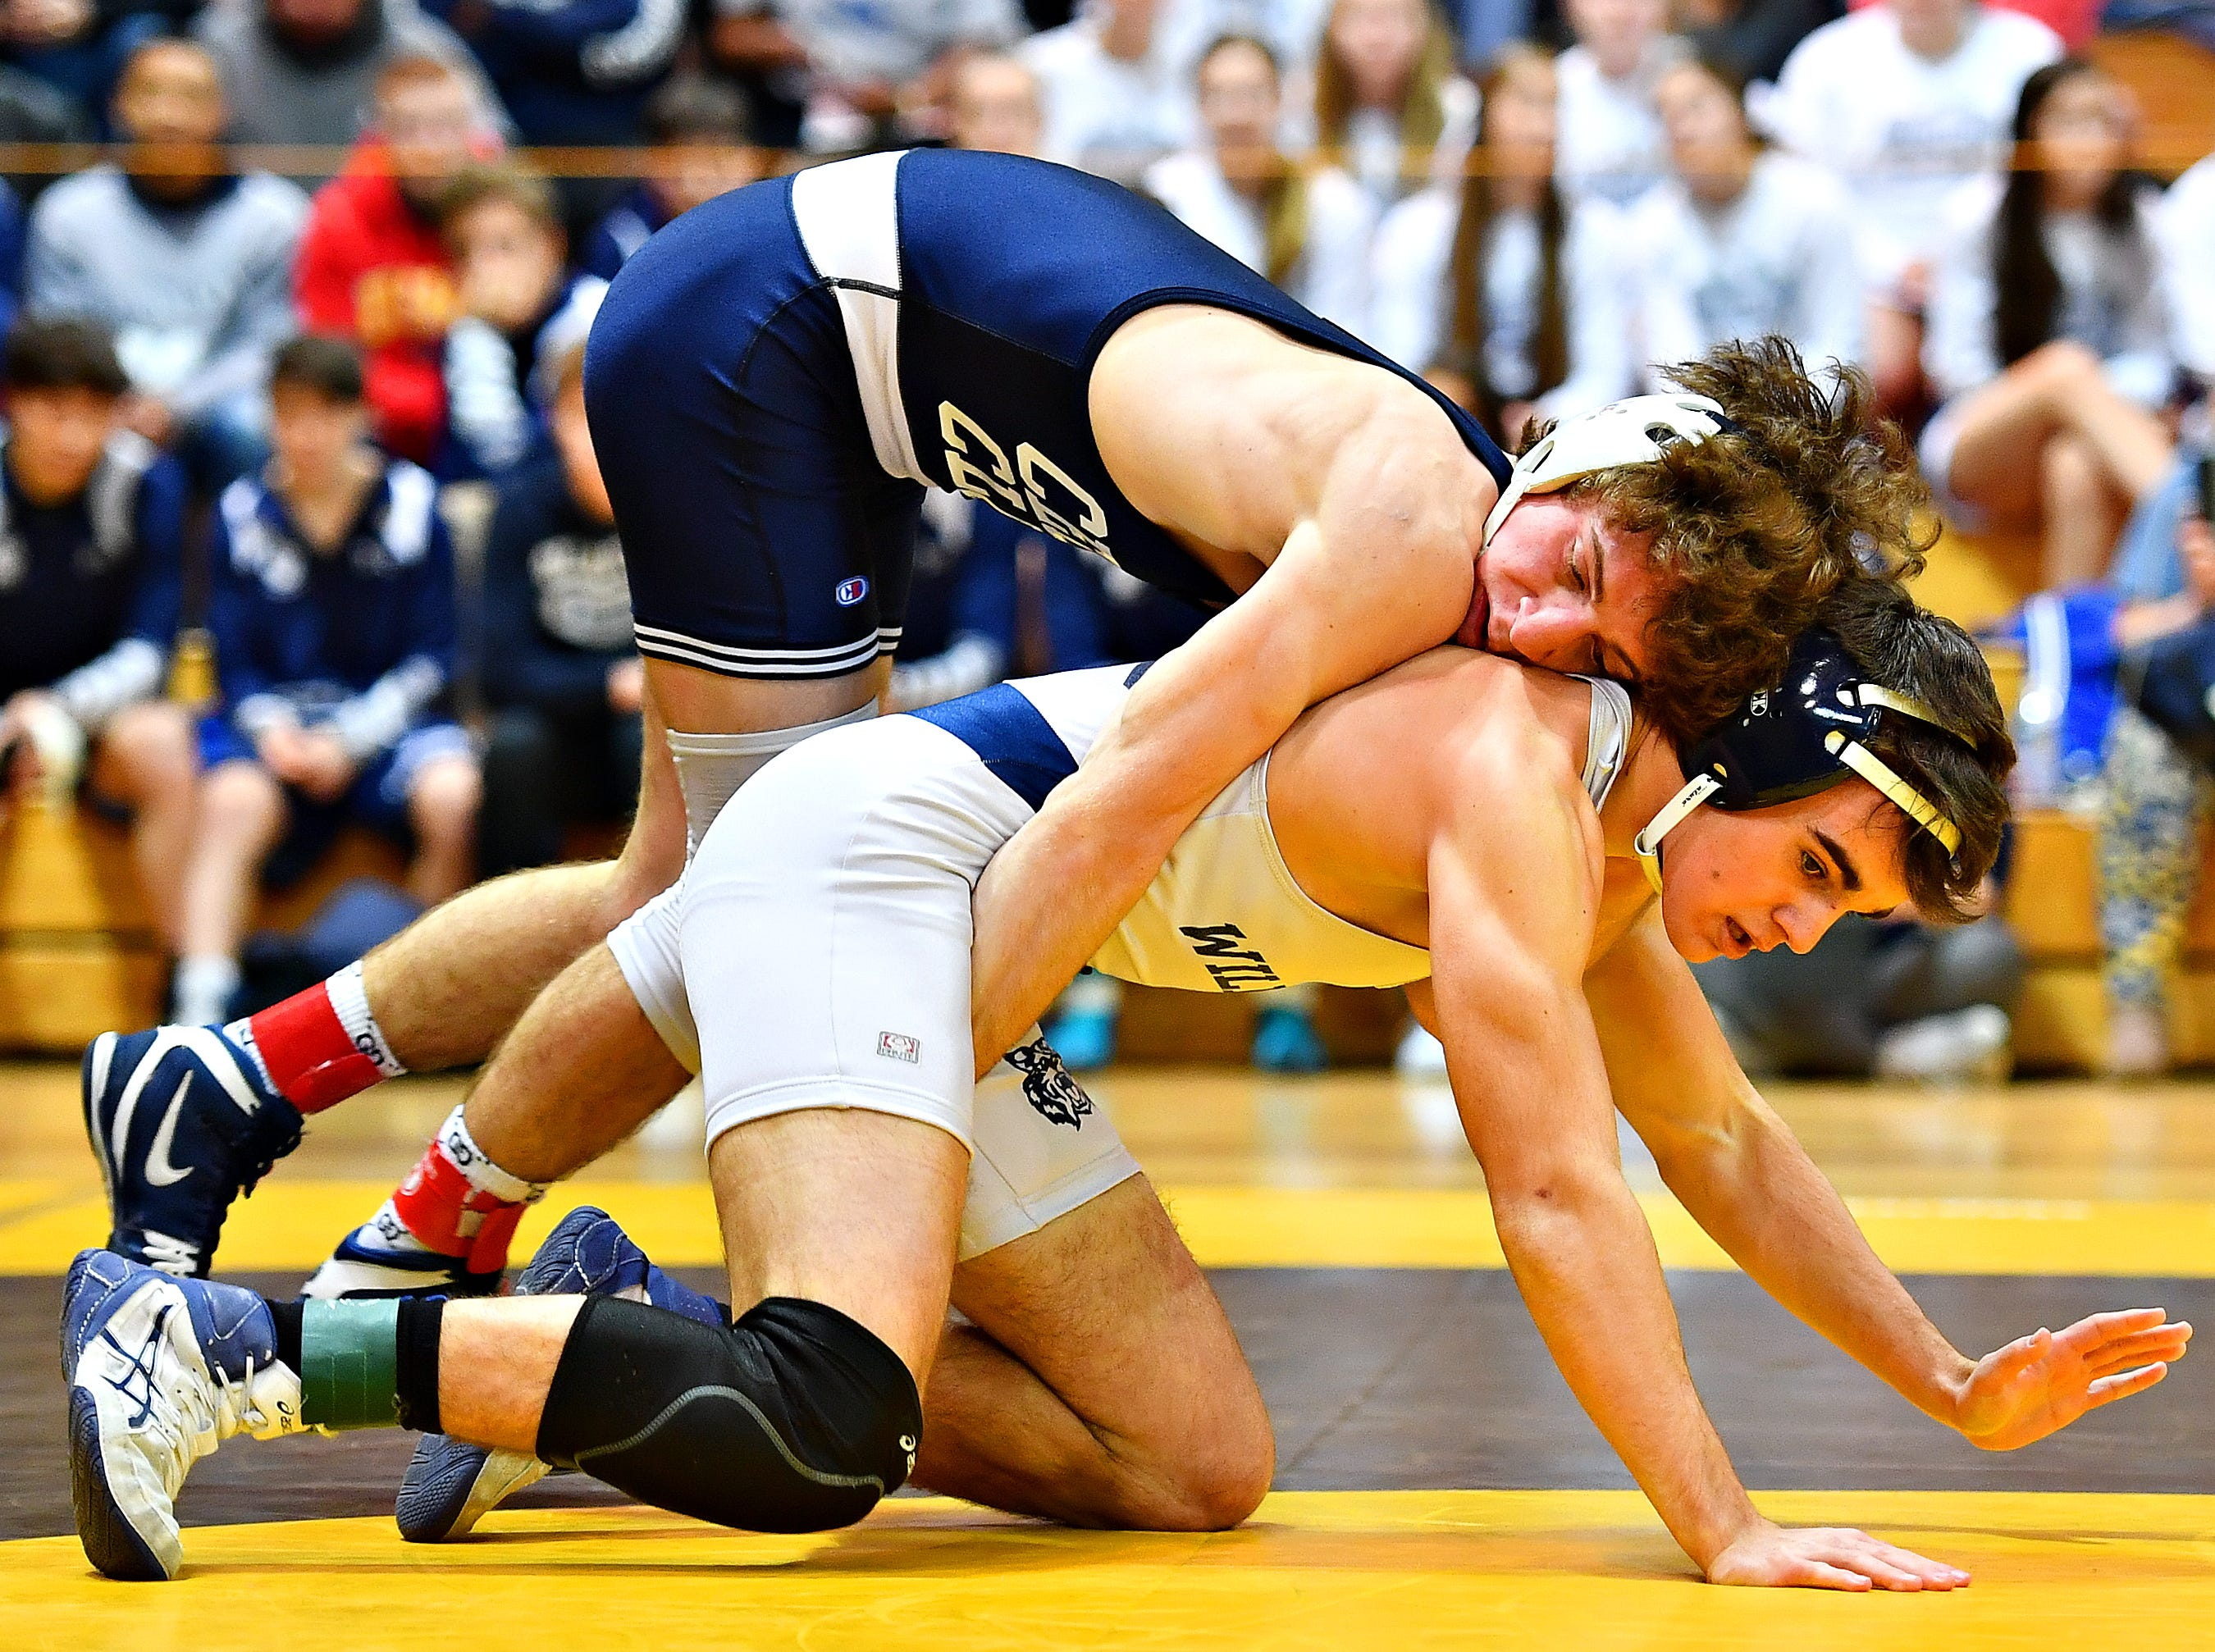 Cedar Cliff's JJ Wilson wrestles Dallastown's Donovan Trauger in the 126 pound weight class during District 3, Class 3A wrestling championship action at Milton Hershey High School in Hershey, Saturday, Feb. 2, 2019. Dawn J. Sagert photo